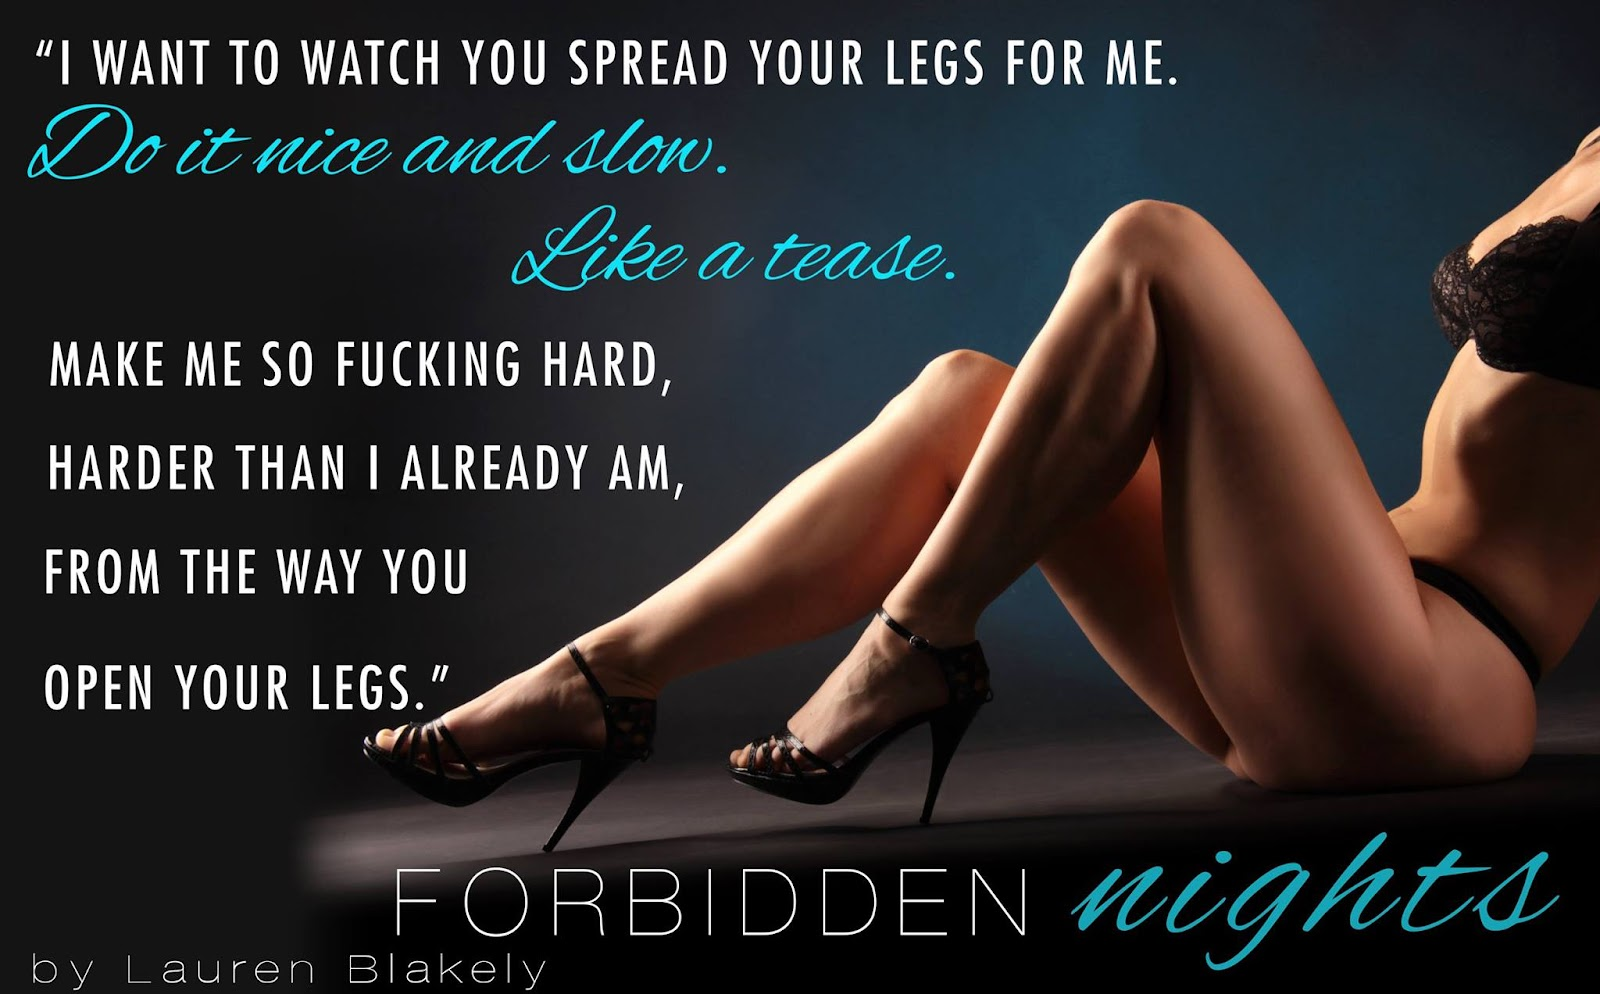 forbidden nights teaser 2.jpg